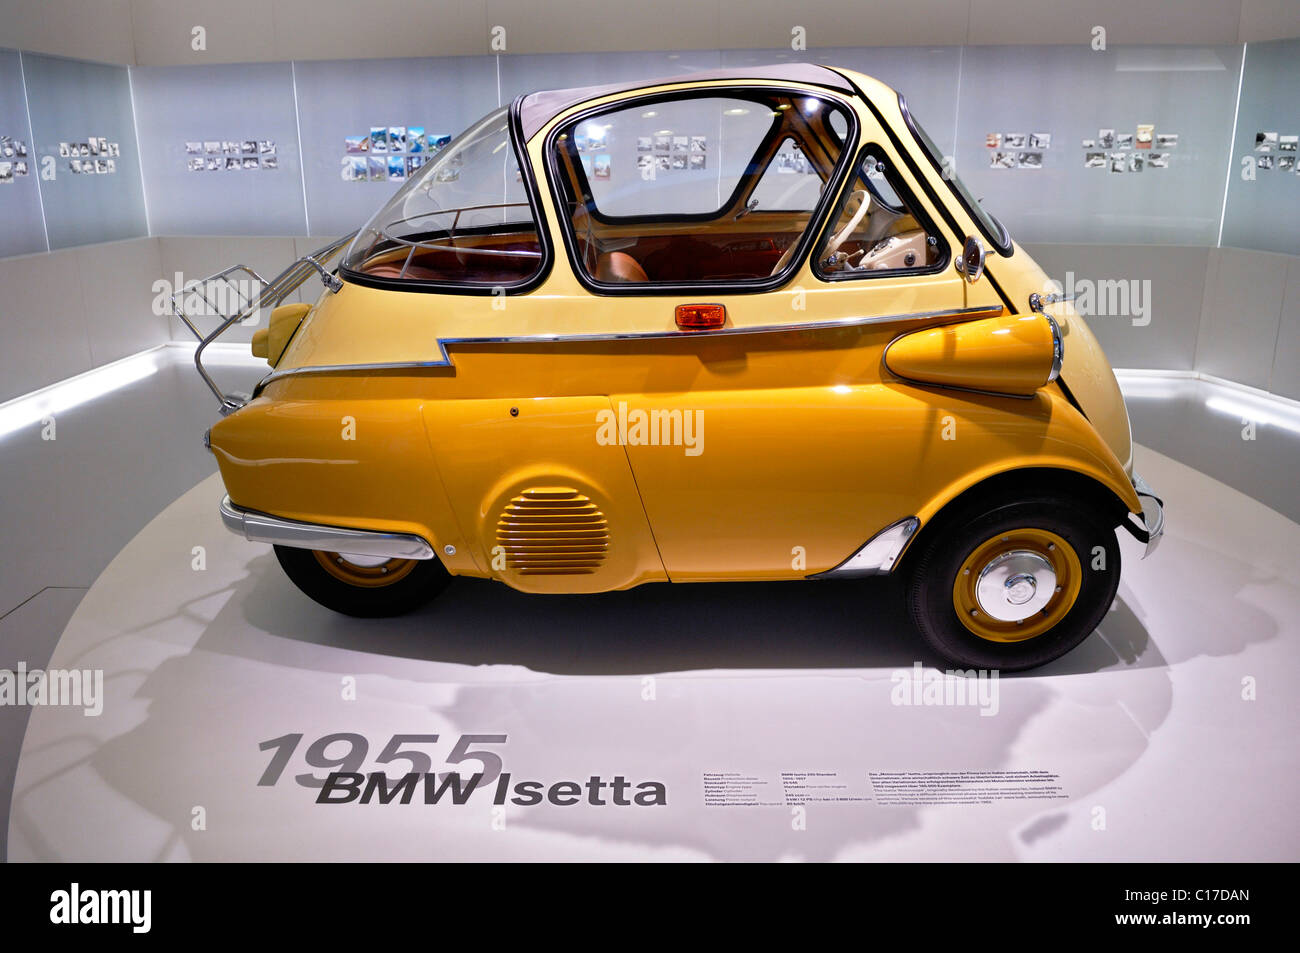 BMW Museum, BMW Isetta, Bubble Car, from 1955-57, Munich, Bavaria, Germany, Europe - Stock Image